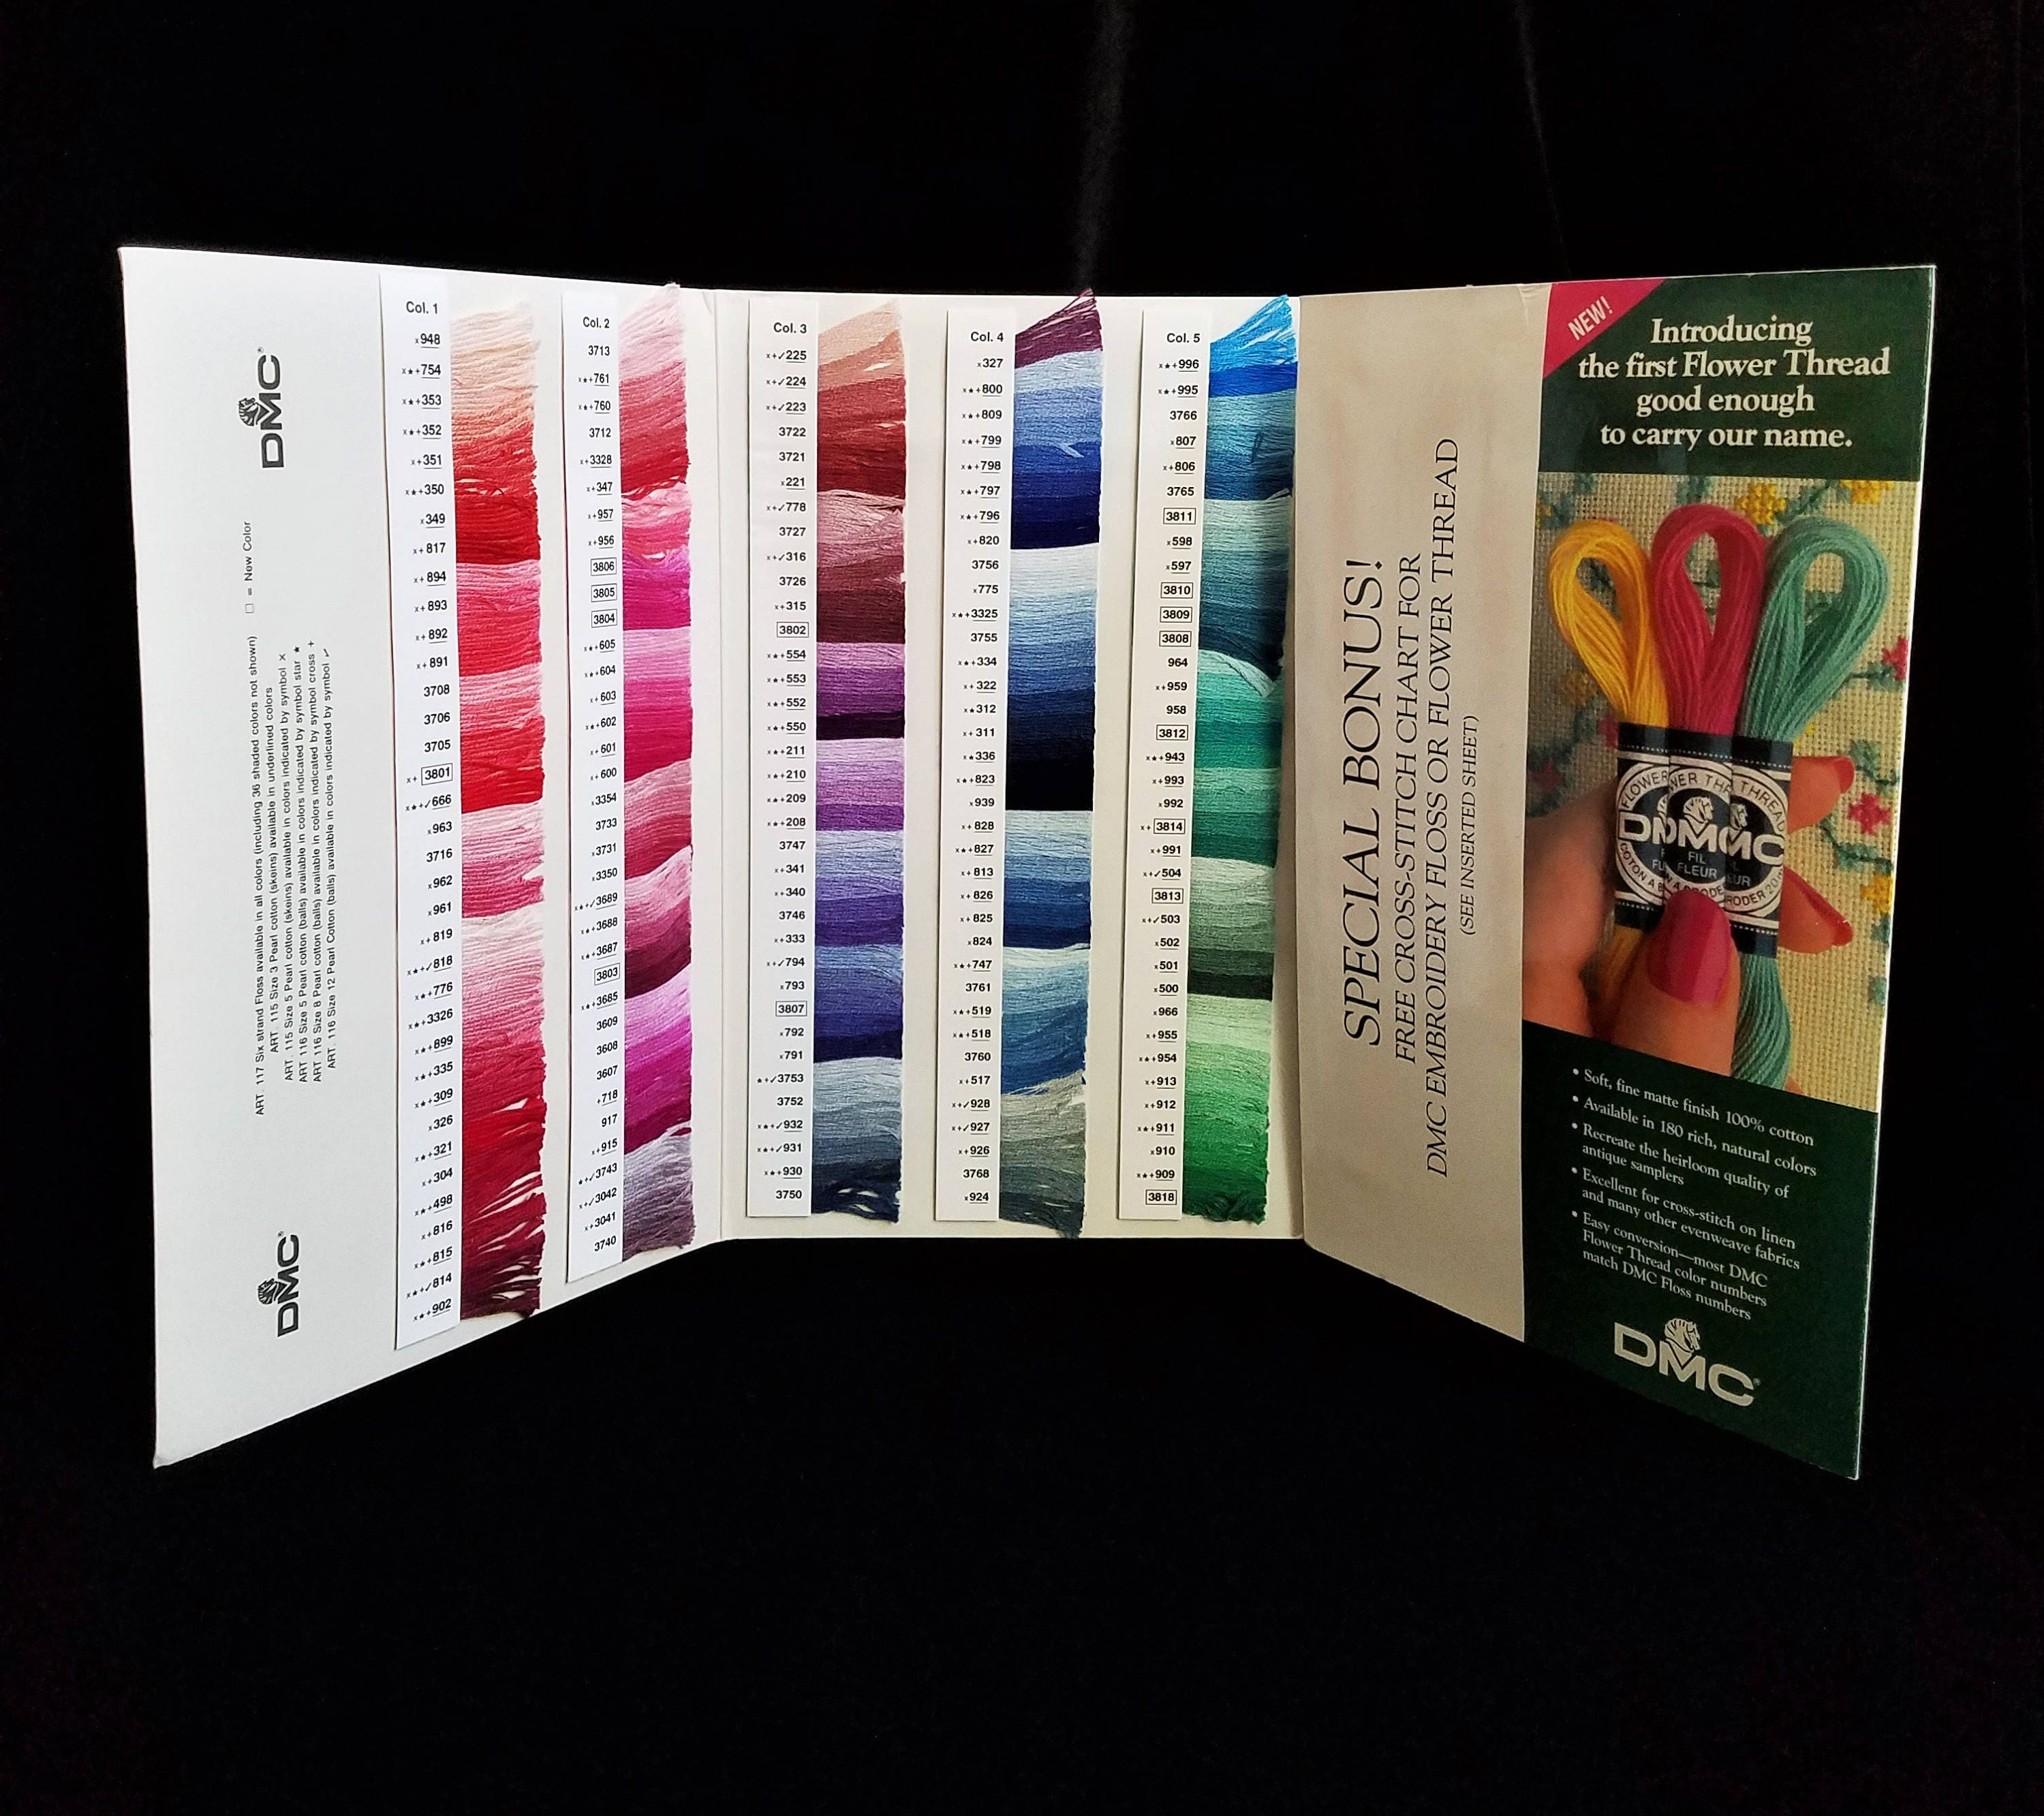 Dmc six strand embroidery floss color card real thread samples dmc color swatch chart needlework pearl cottons sold by oldraven nvjuhfo Images